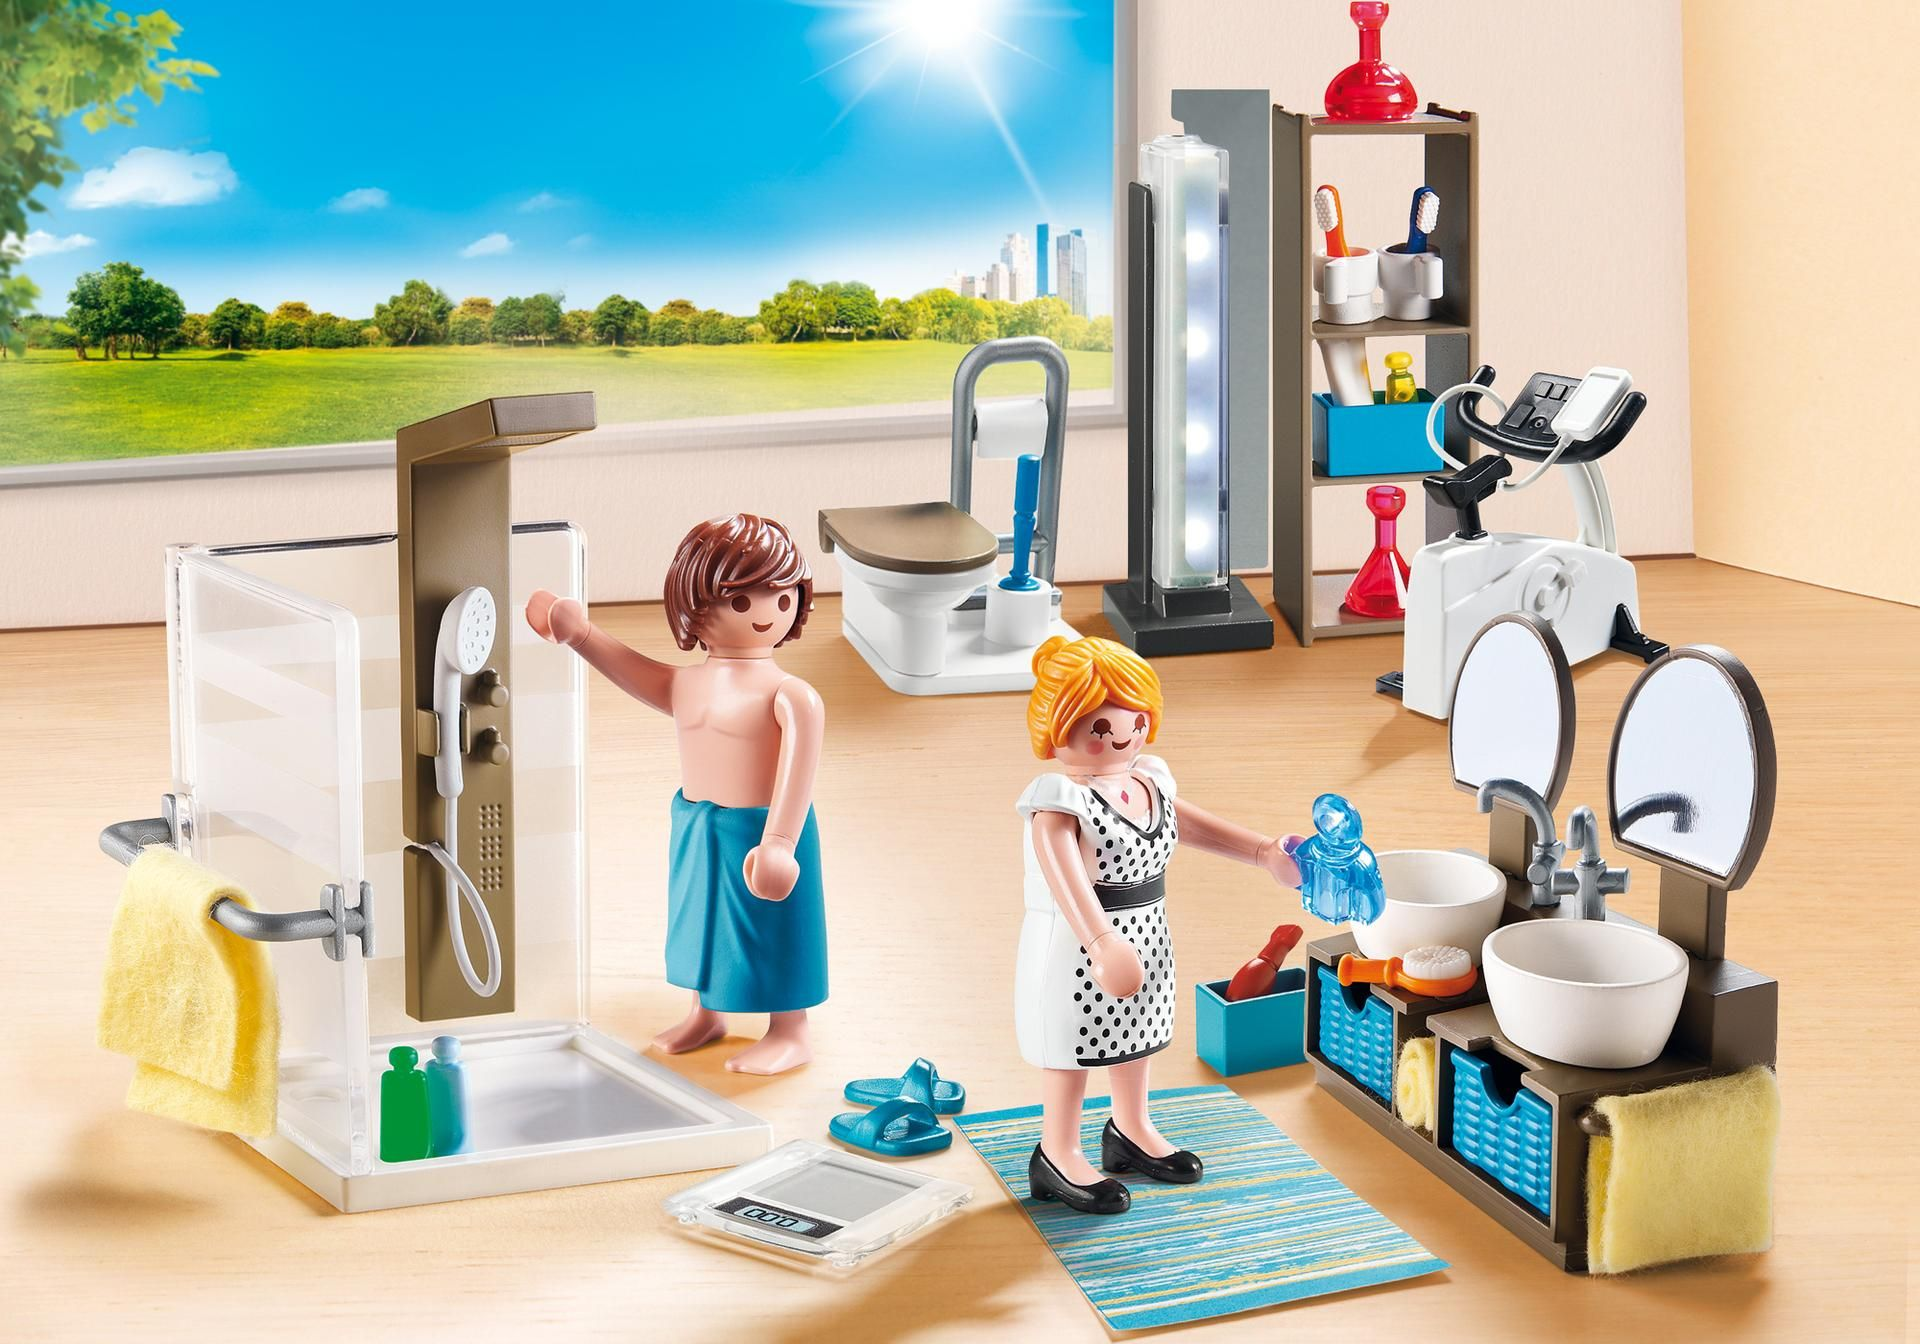 Http Media Playmobil Com I Playmobil 9268 Product Detail Playmobil Shower Cabin Biking Workout